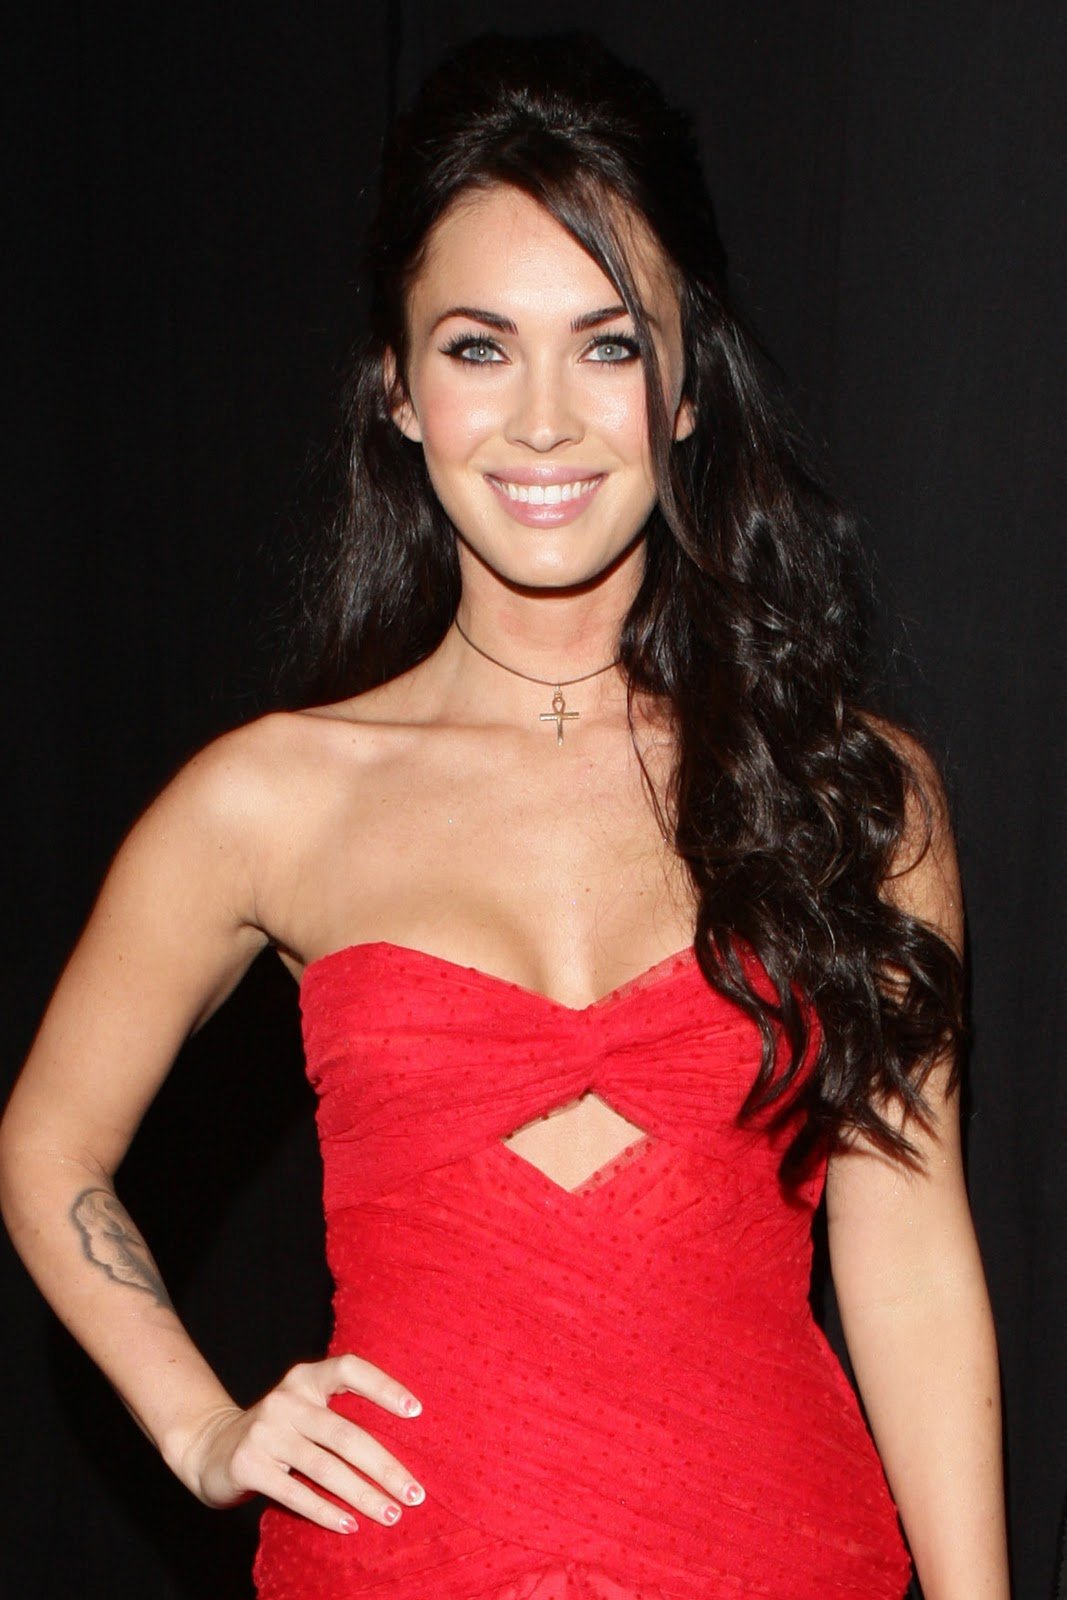 foxy megan megan fox in a red dress for spike video game